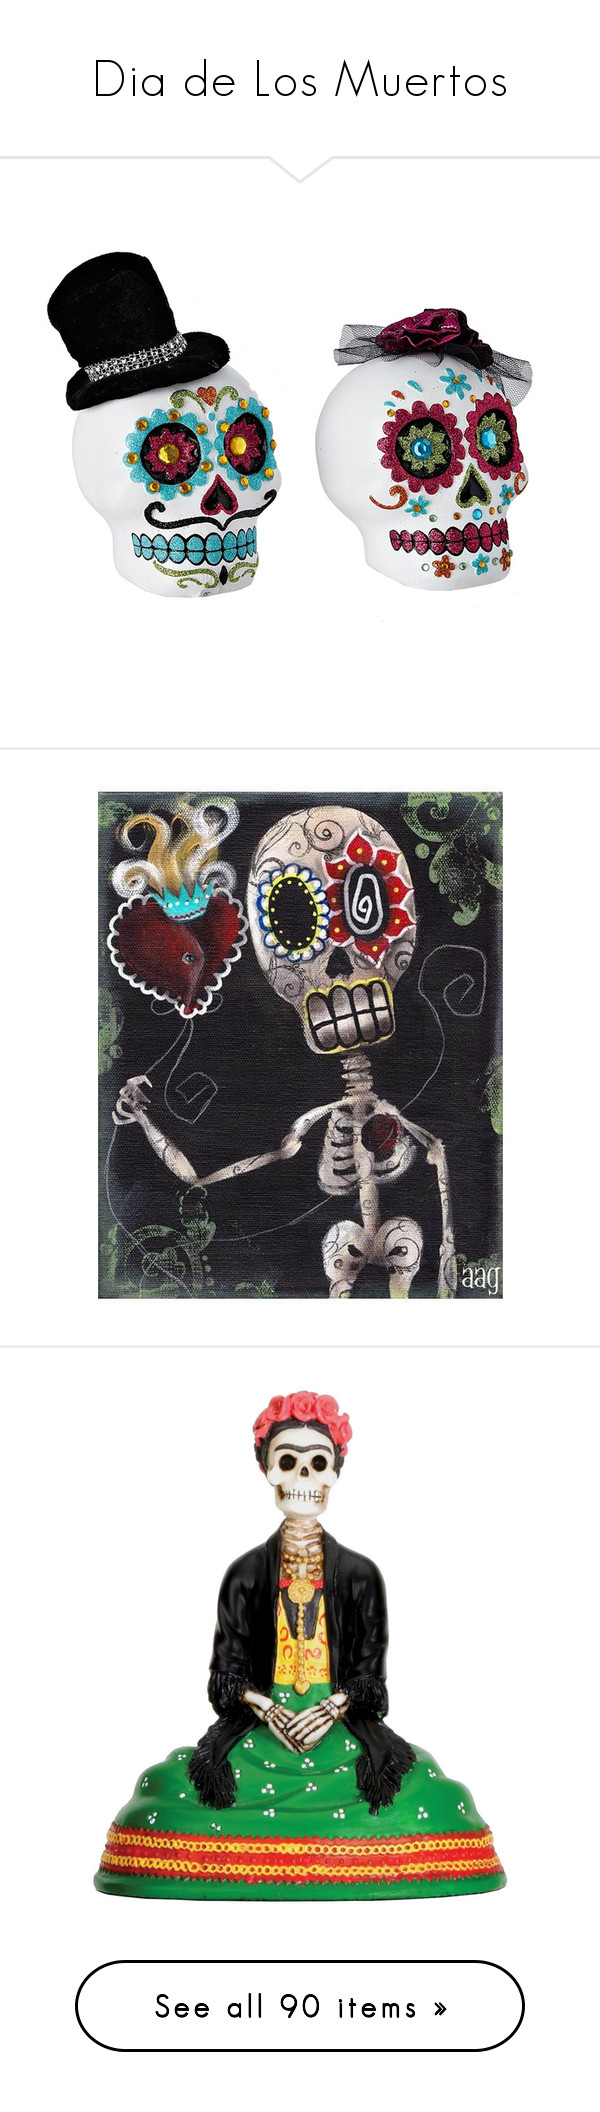 Dia De Los Muertos By Editor Collector Liked On Polyvore